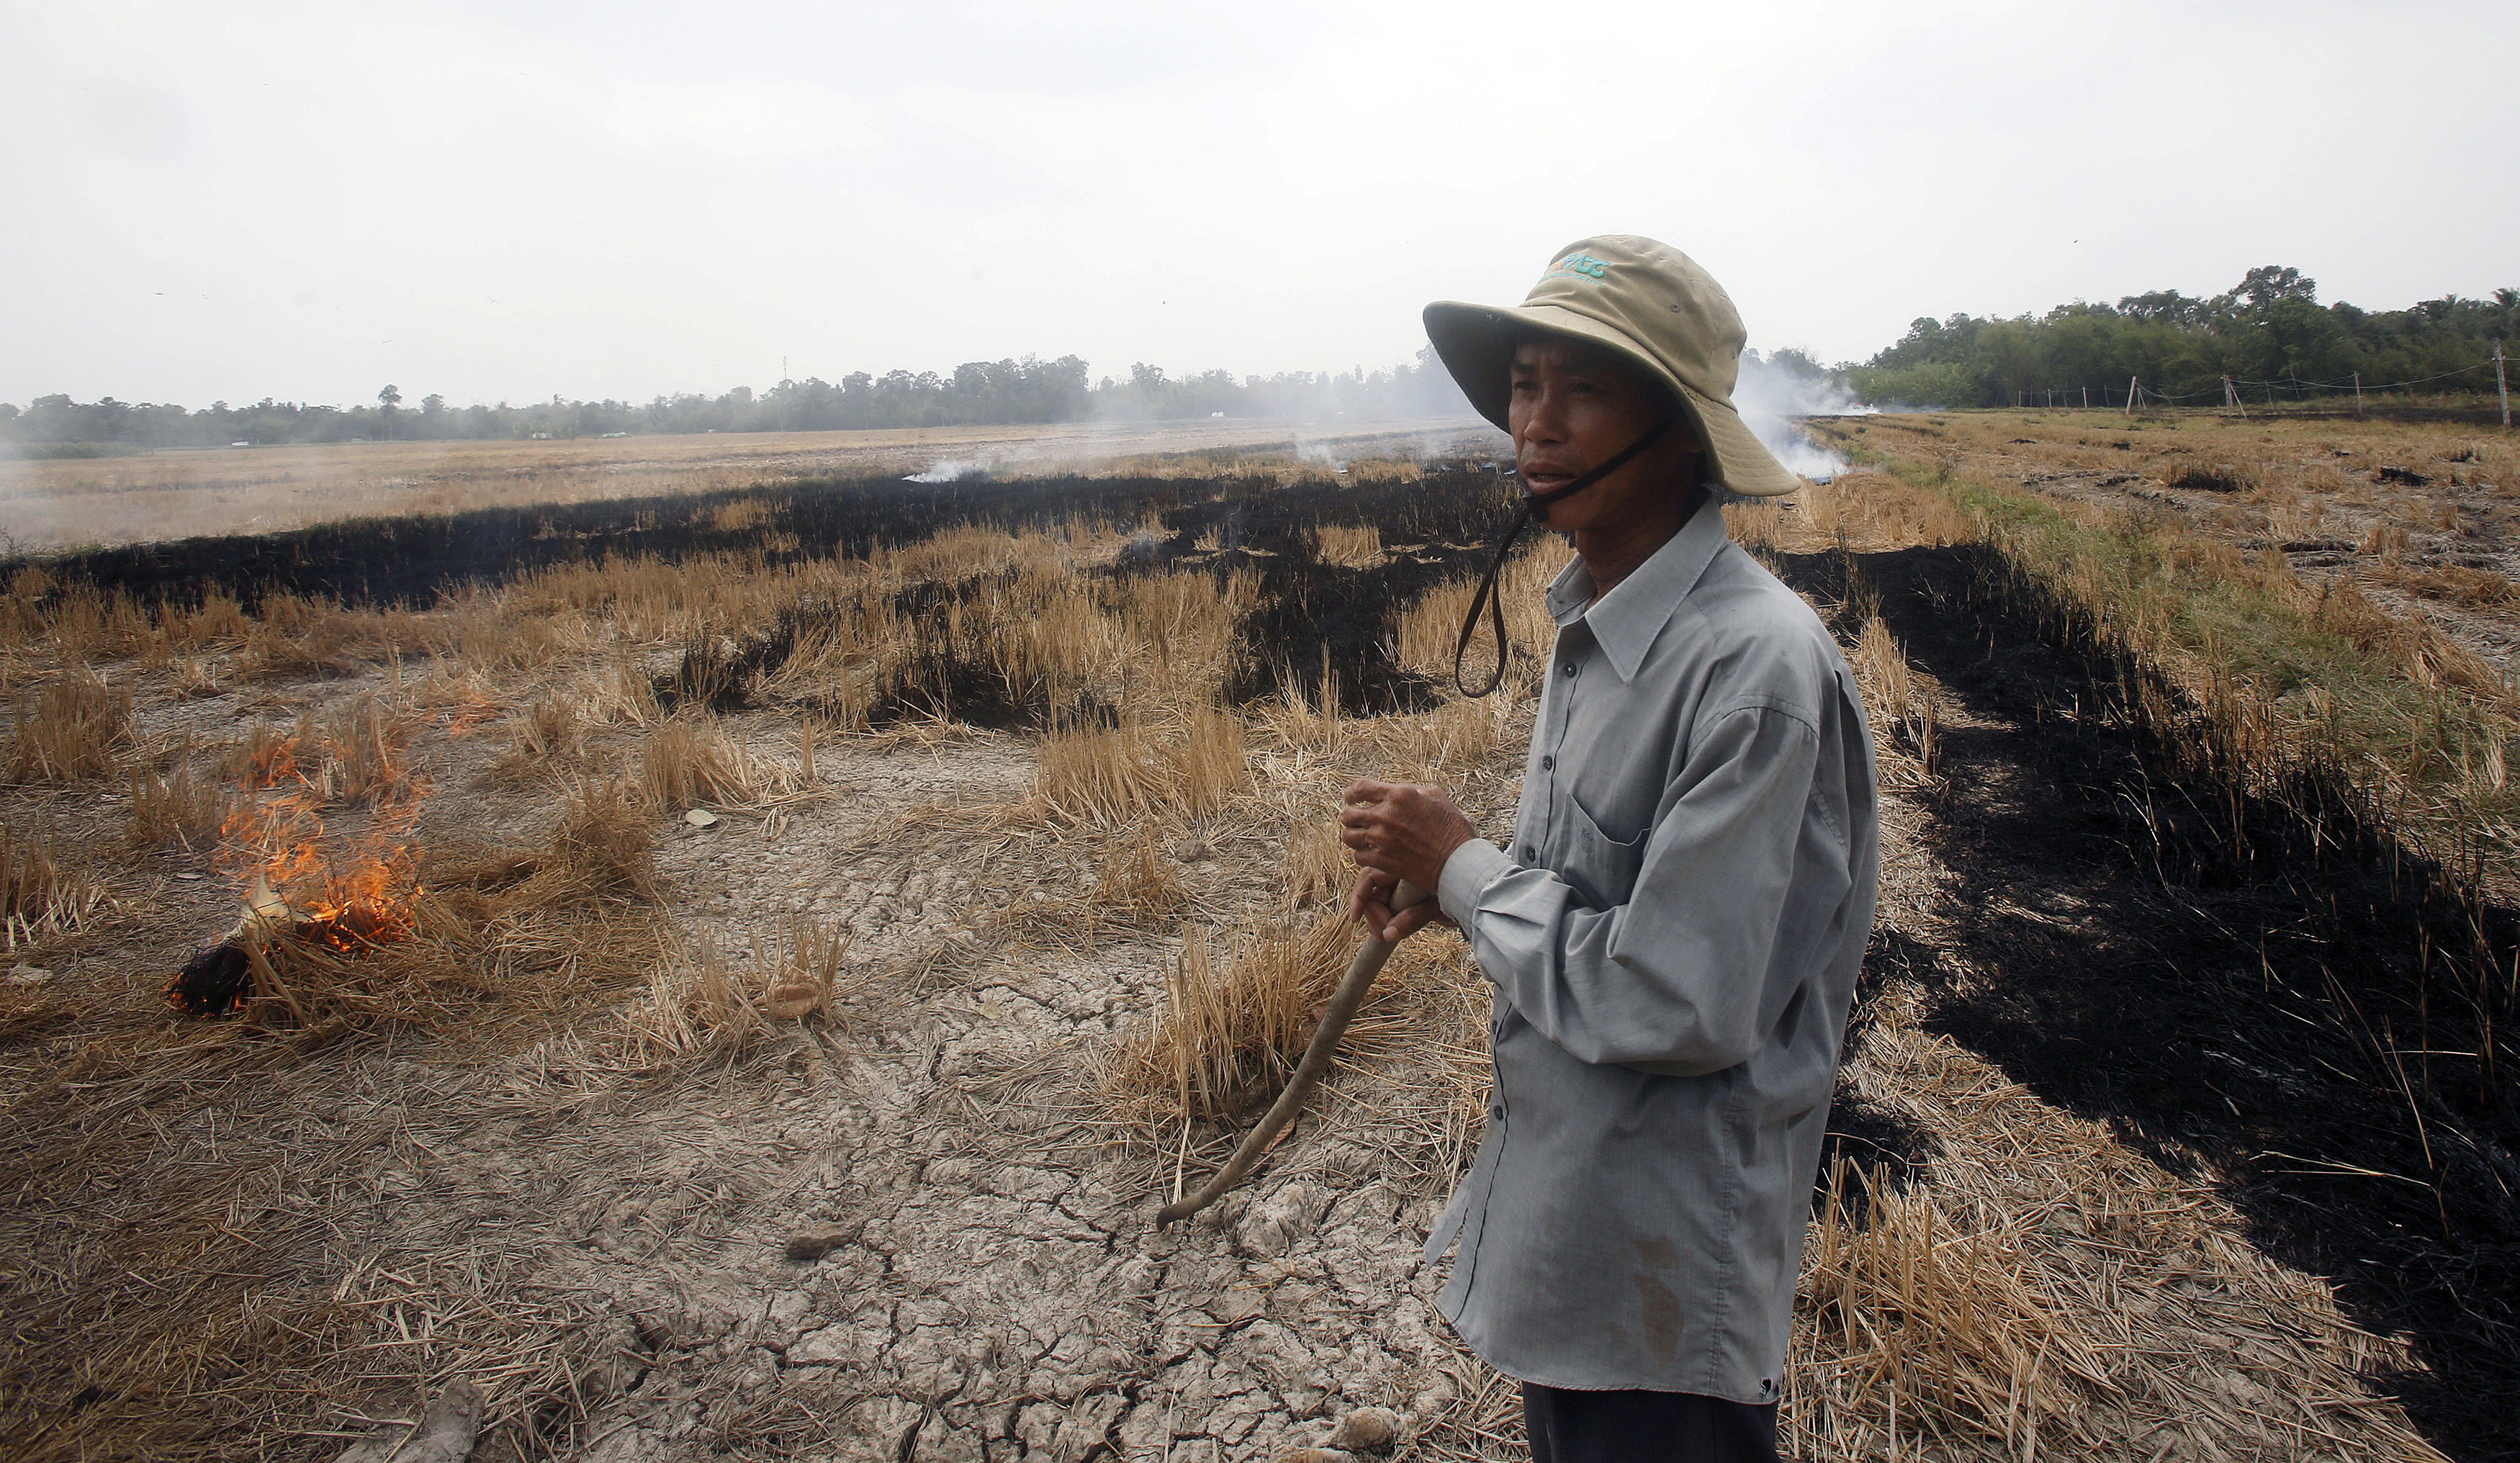 A farmer burns his dried-up rice on a paddy field stricken by drought in Soc Trang province in the Mekong Delta in Vietnam March 30, 2016.